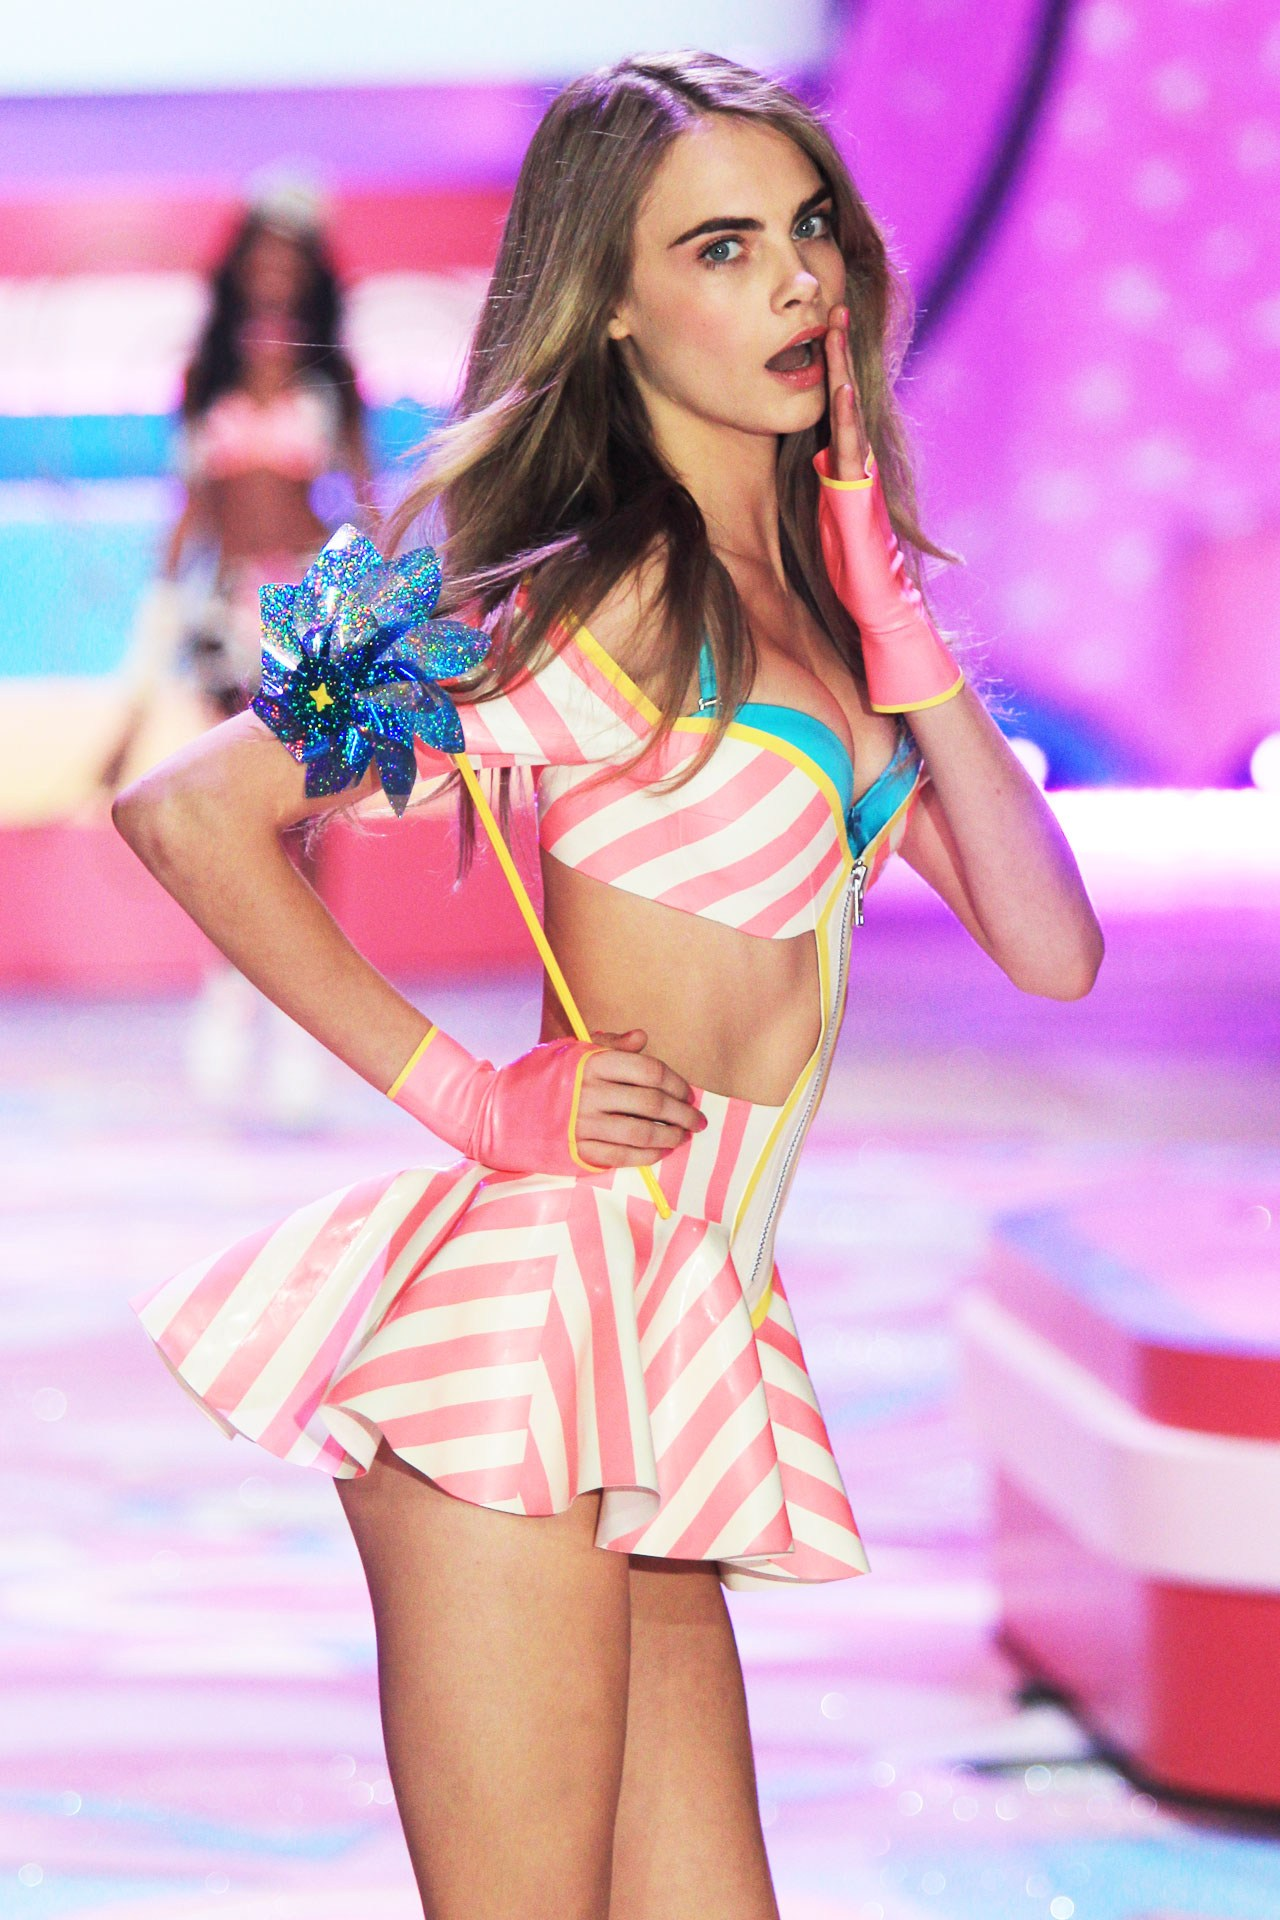 Cara Delevingne makes her debut at the 2012 Victorias Secret Fashion show.